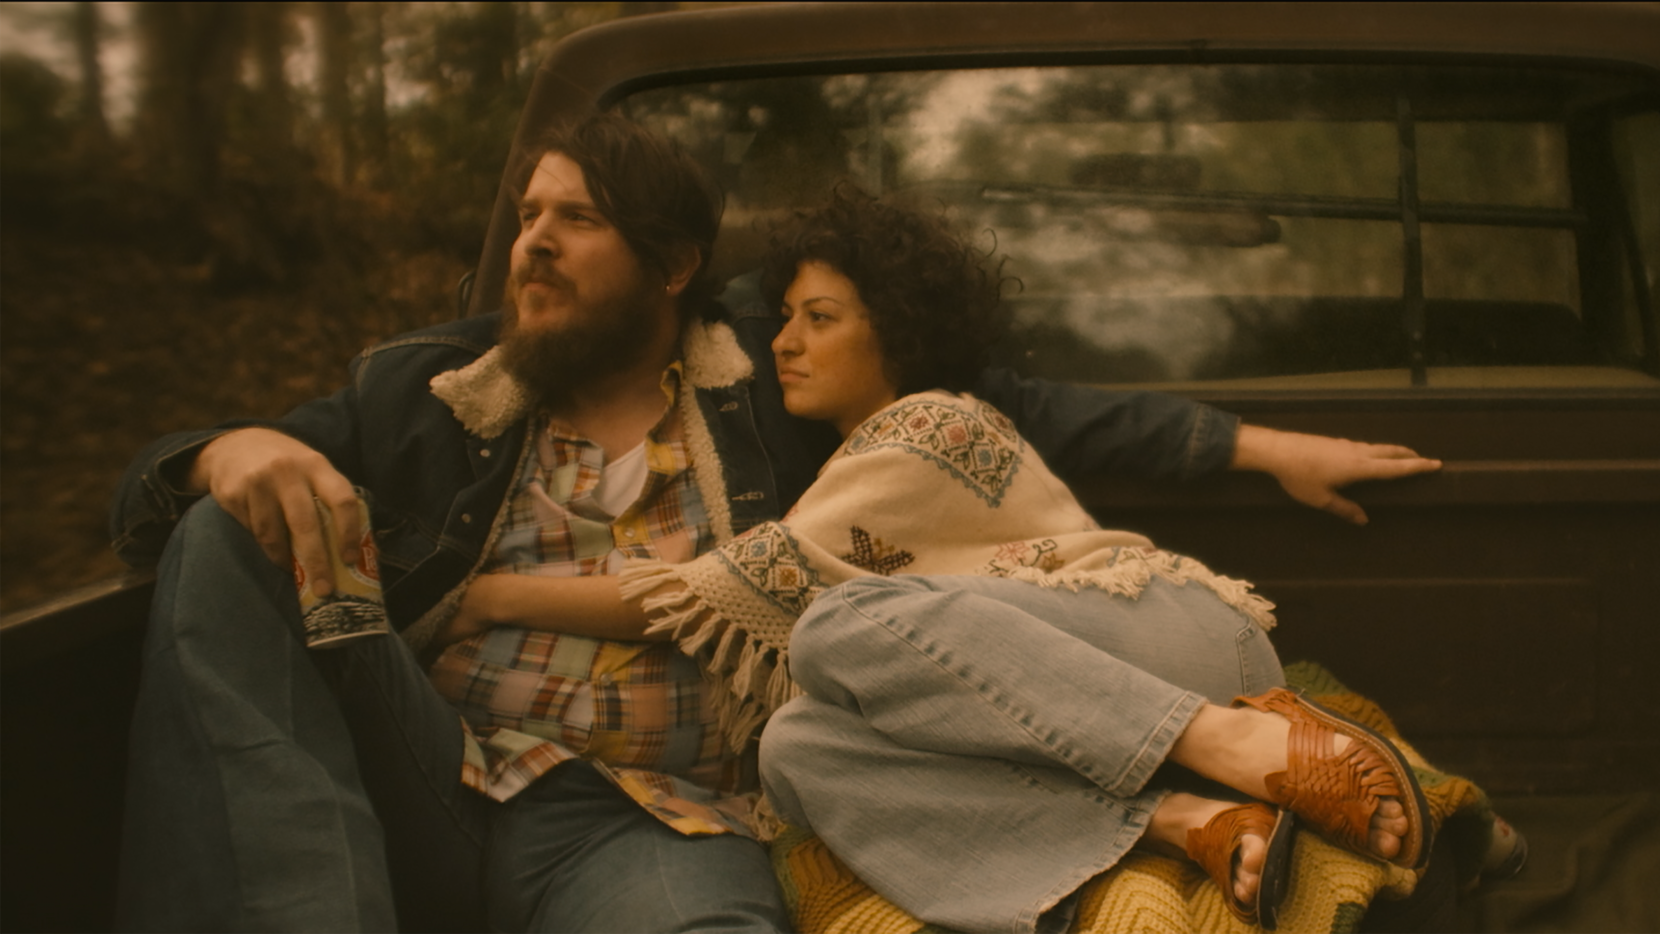 Ben Dickey and Alia Shawkat play Blaze Foley and Sybil Rosen in the new film Blaze, written and directed by Ethan Hawke.